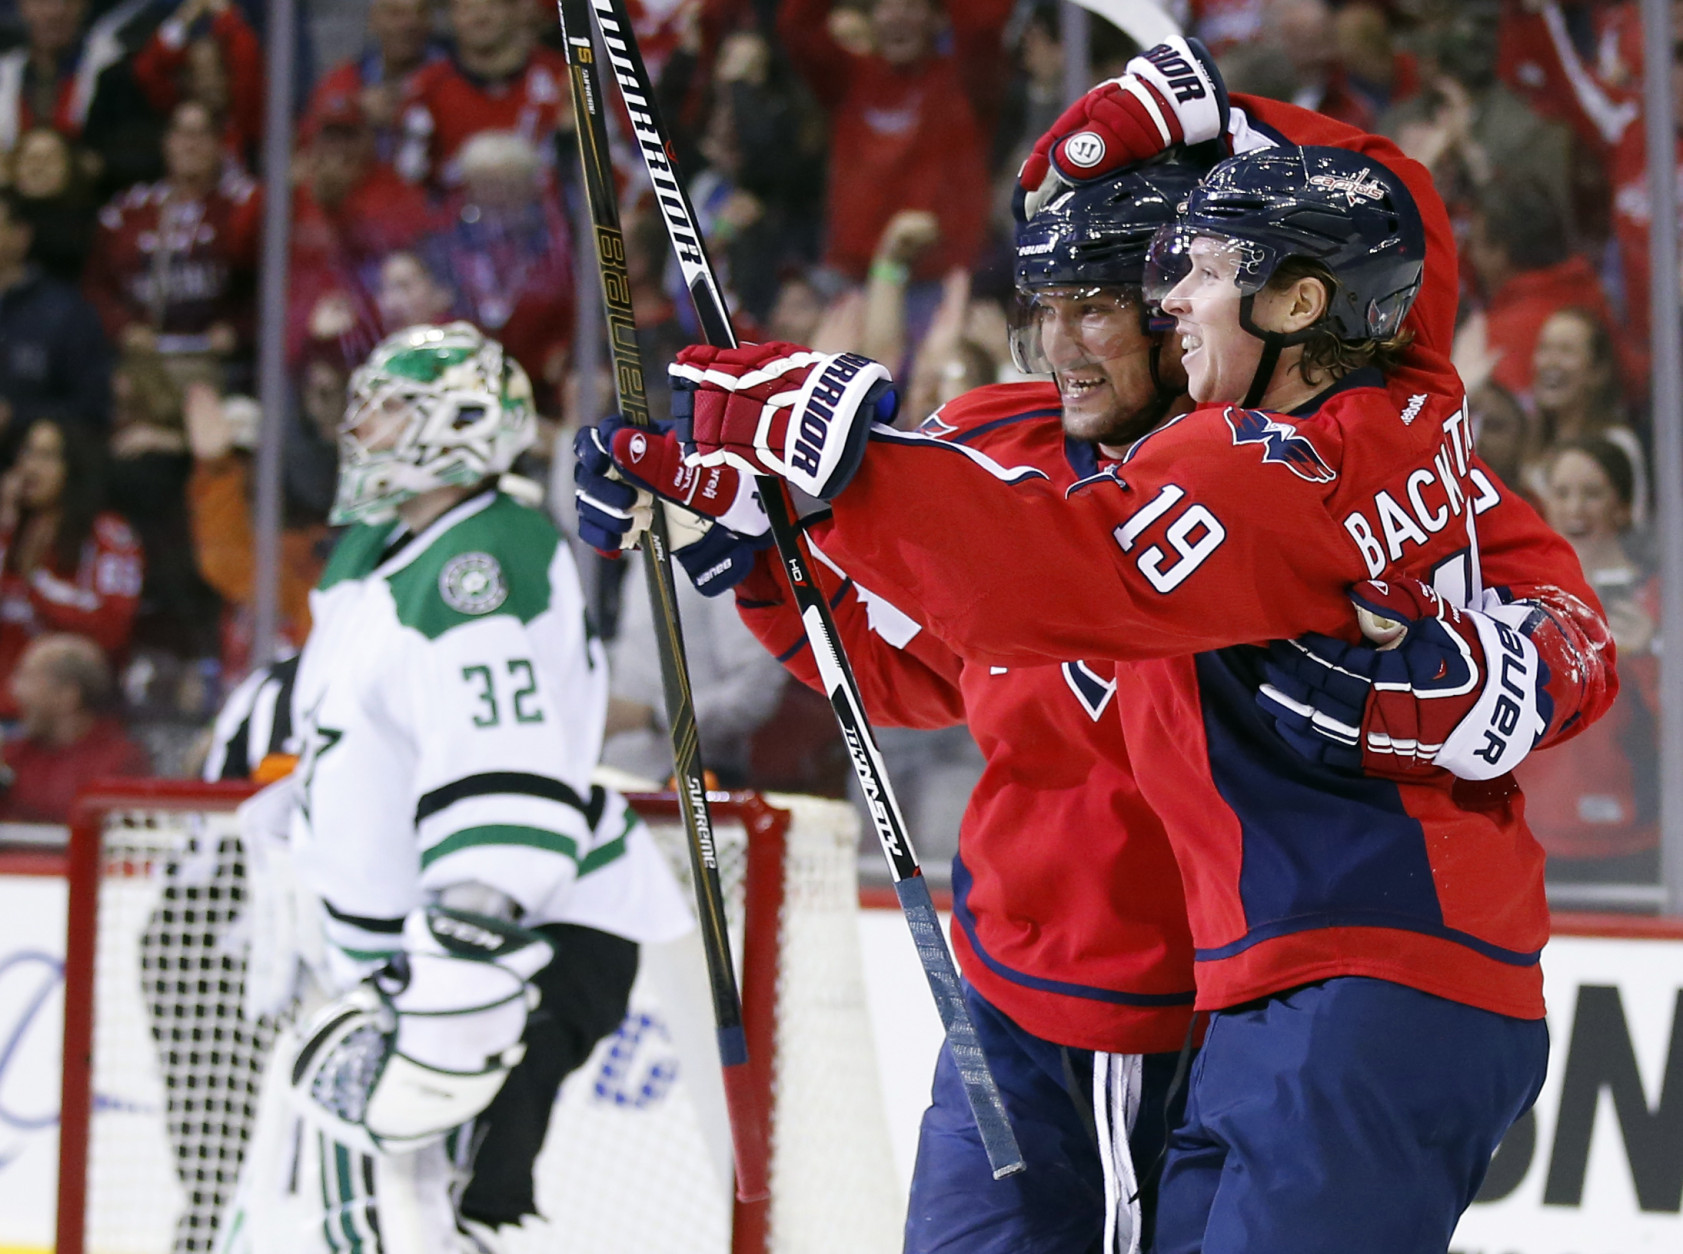 Washington Capitals left wing Alex Ovechkin (8), from Russia, celebrates with center Nicklas Backstrom (19), from Sweden, after Backstrom's goal past Dallas Stars goalie Kari Lehtonen (32), from Finland, during the first period of an NHL hockey game, Thursday, Nov. 19, 2015, in Washington. (AP Photo/Alex Brandon)